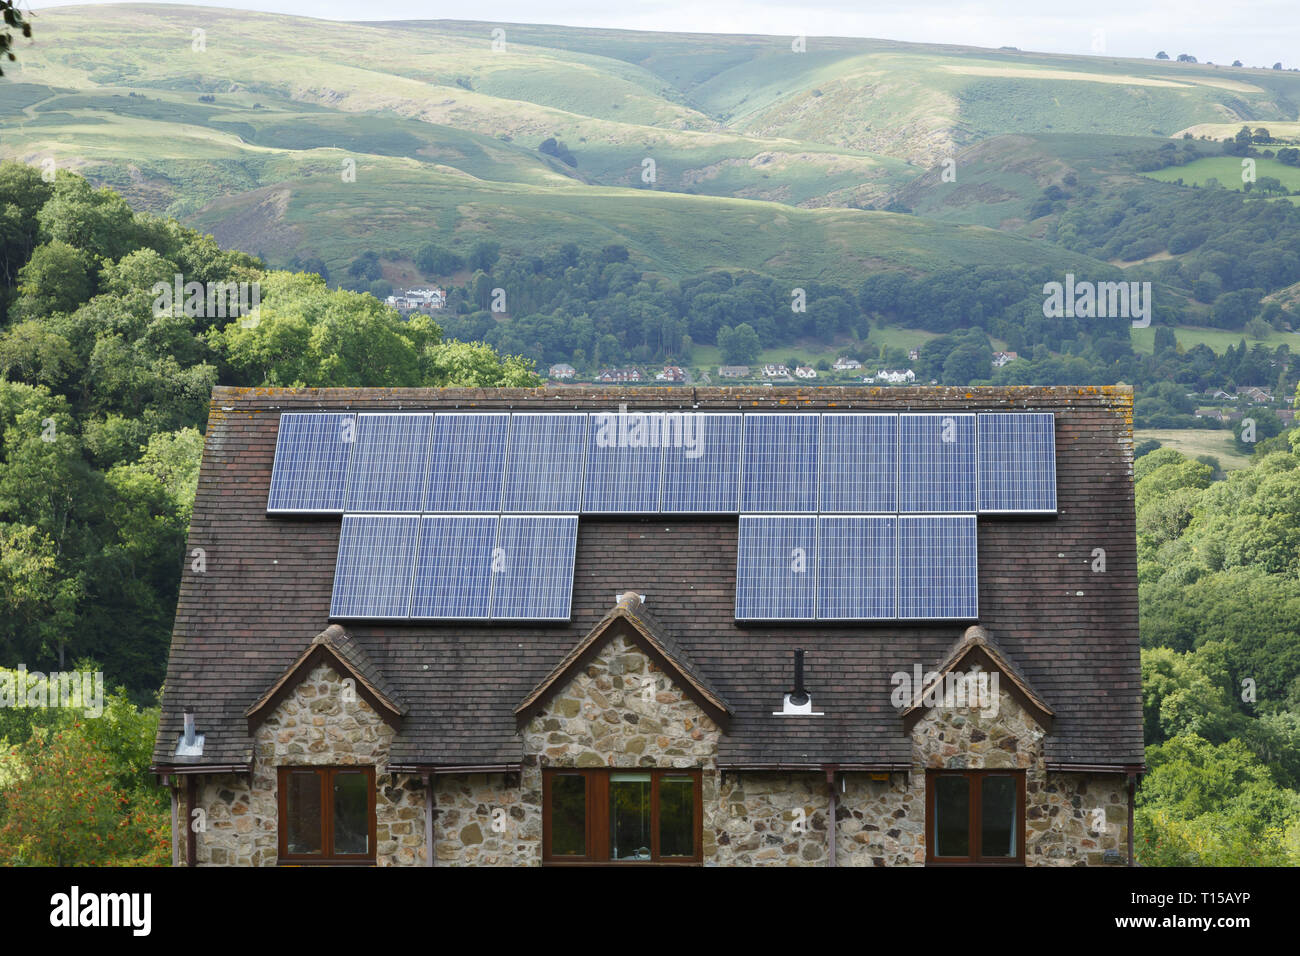 Shropshire, UK - September 10, 2013. Solar panels fitted to the roof of a house in rural England. - Stock Image